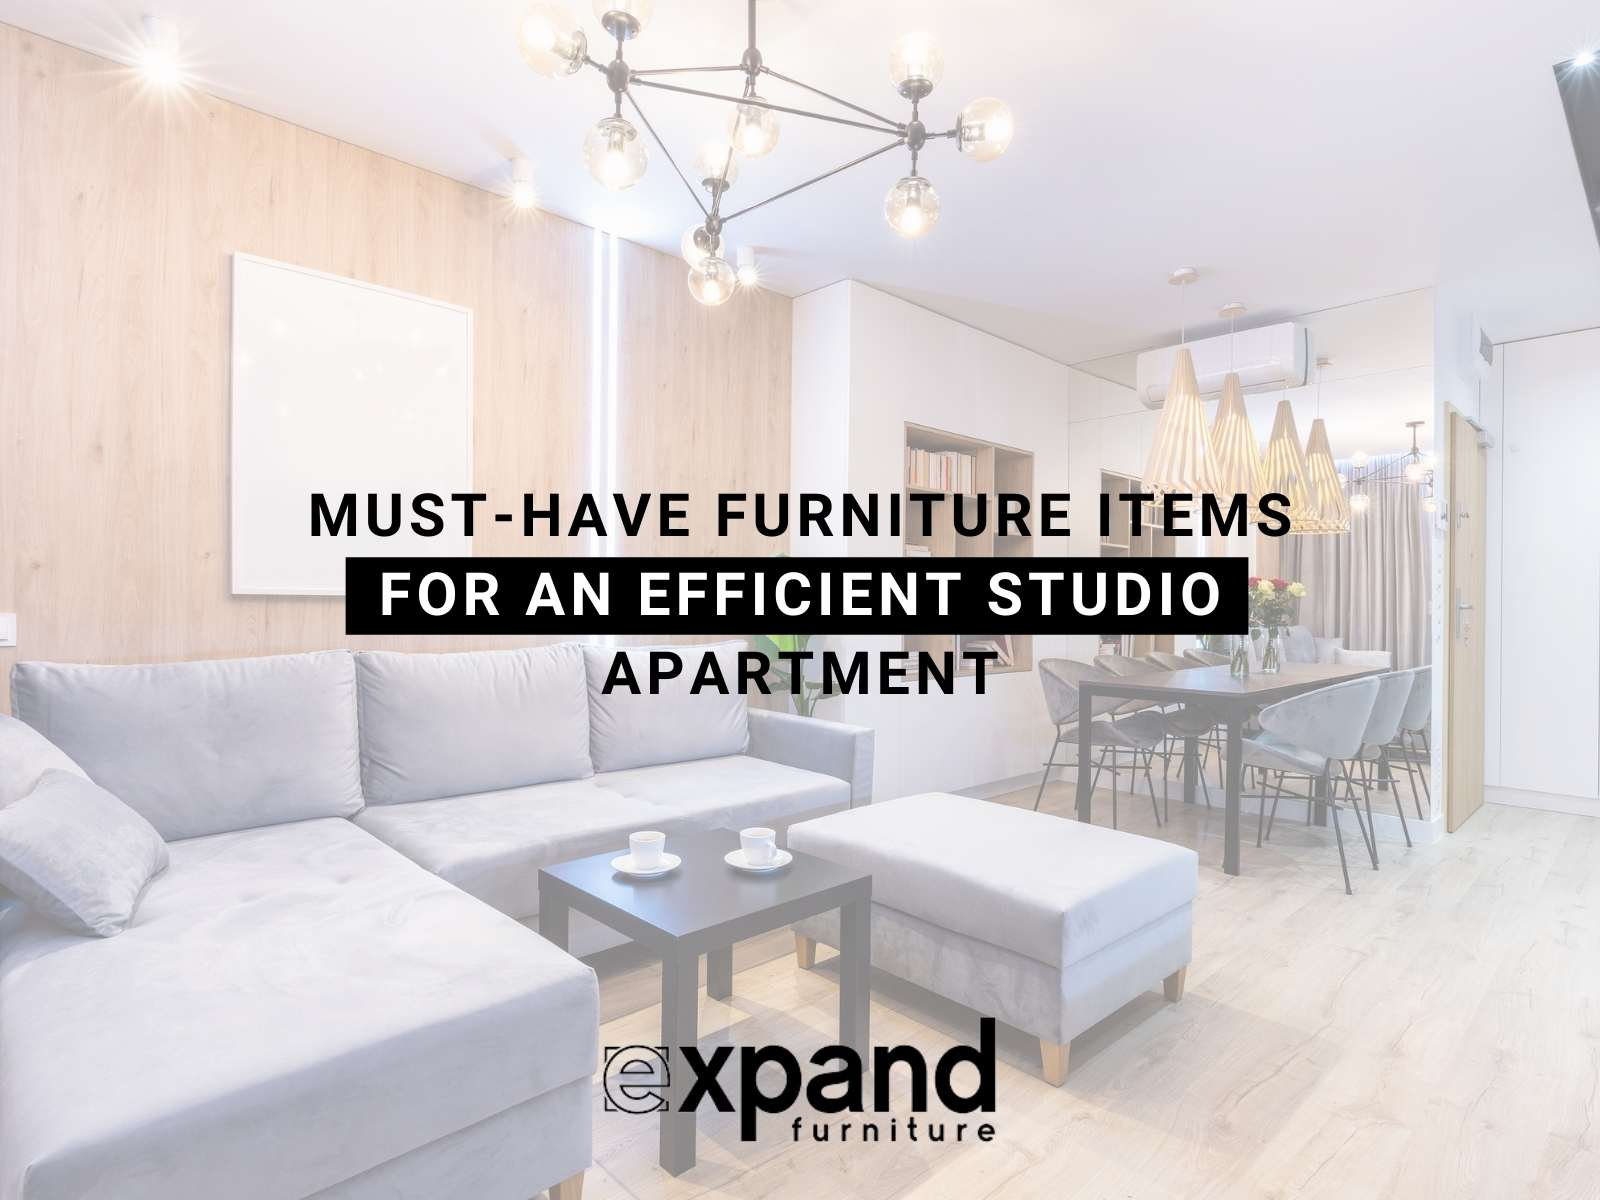 Must-Have Furniture Items For An Efficient Studio Apartment